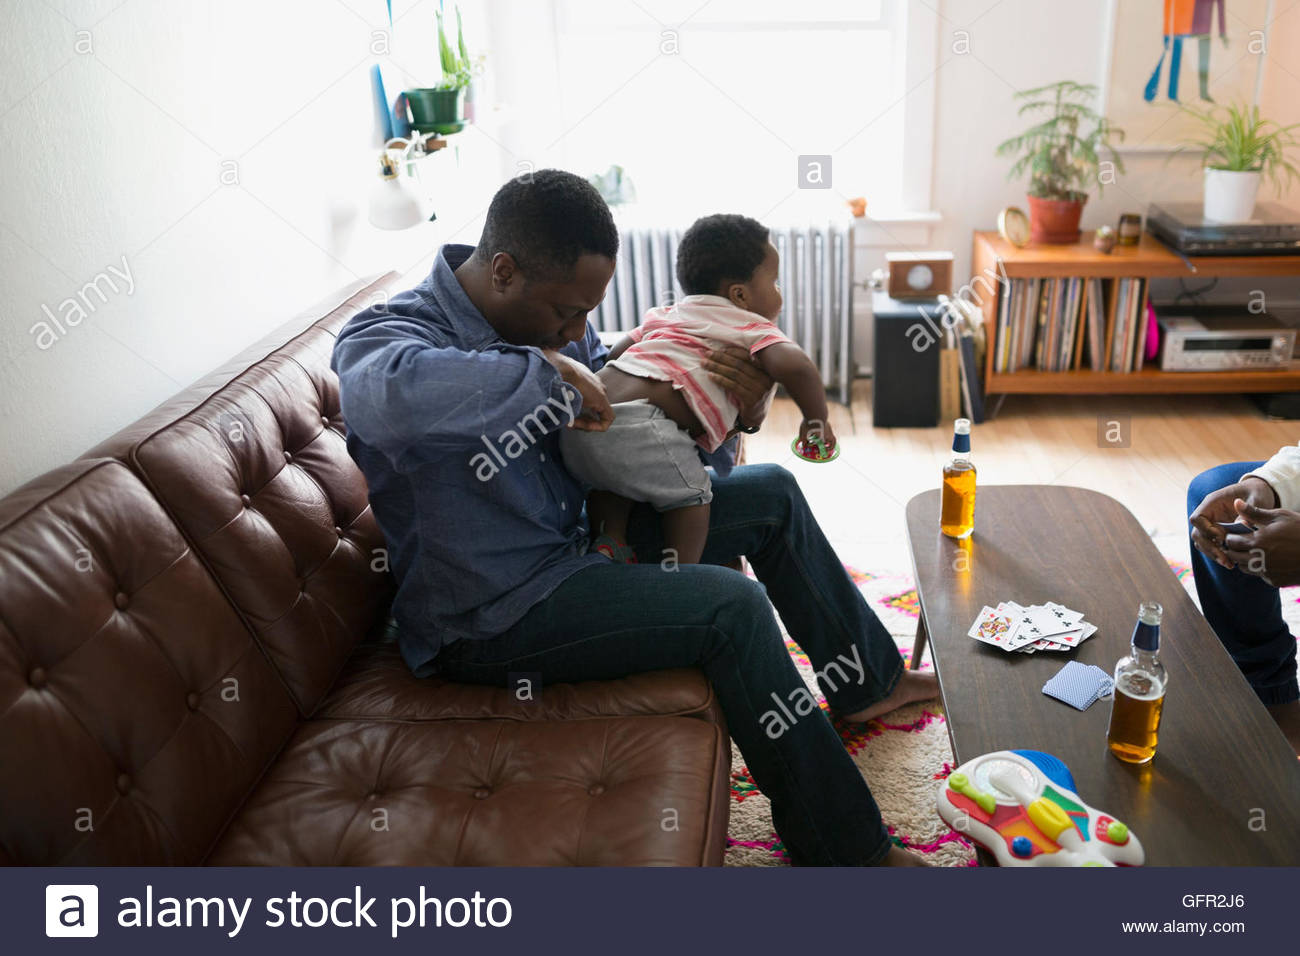 Father checking son - Stock Image